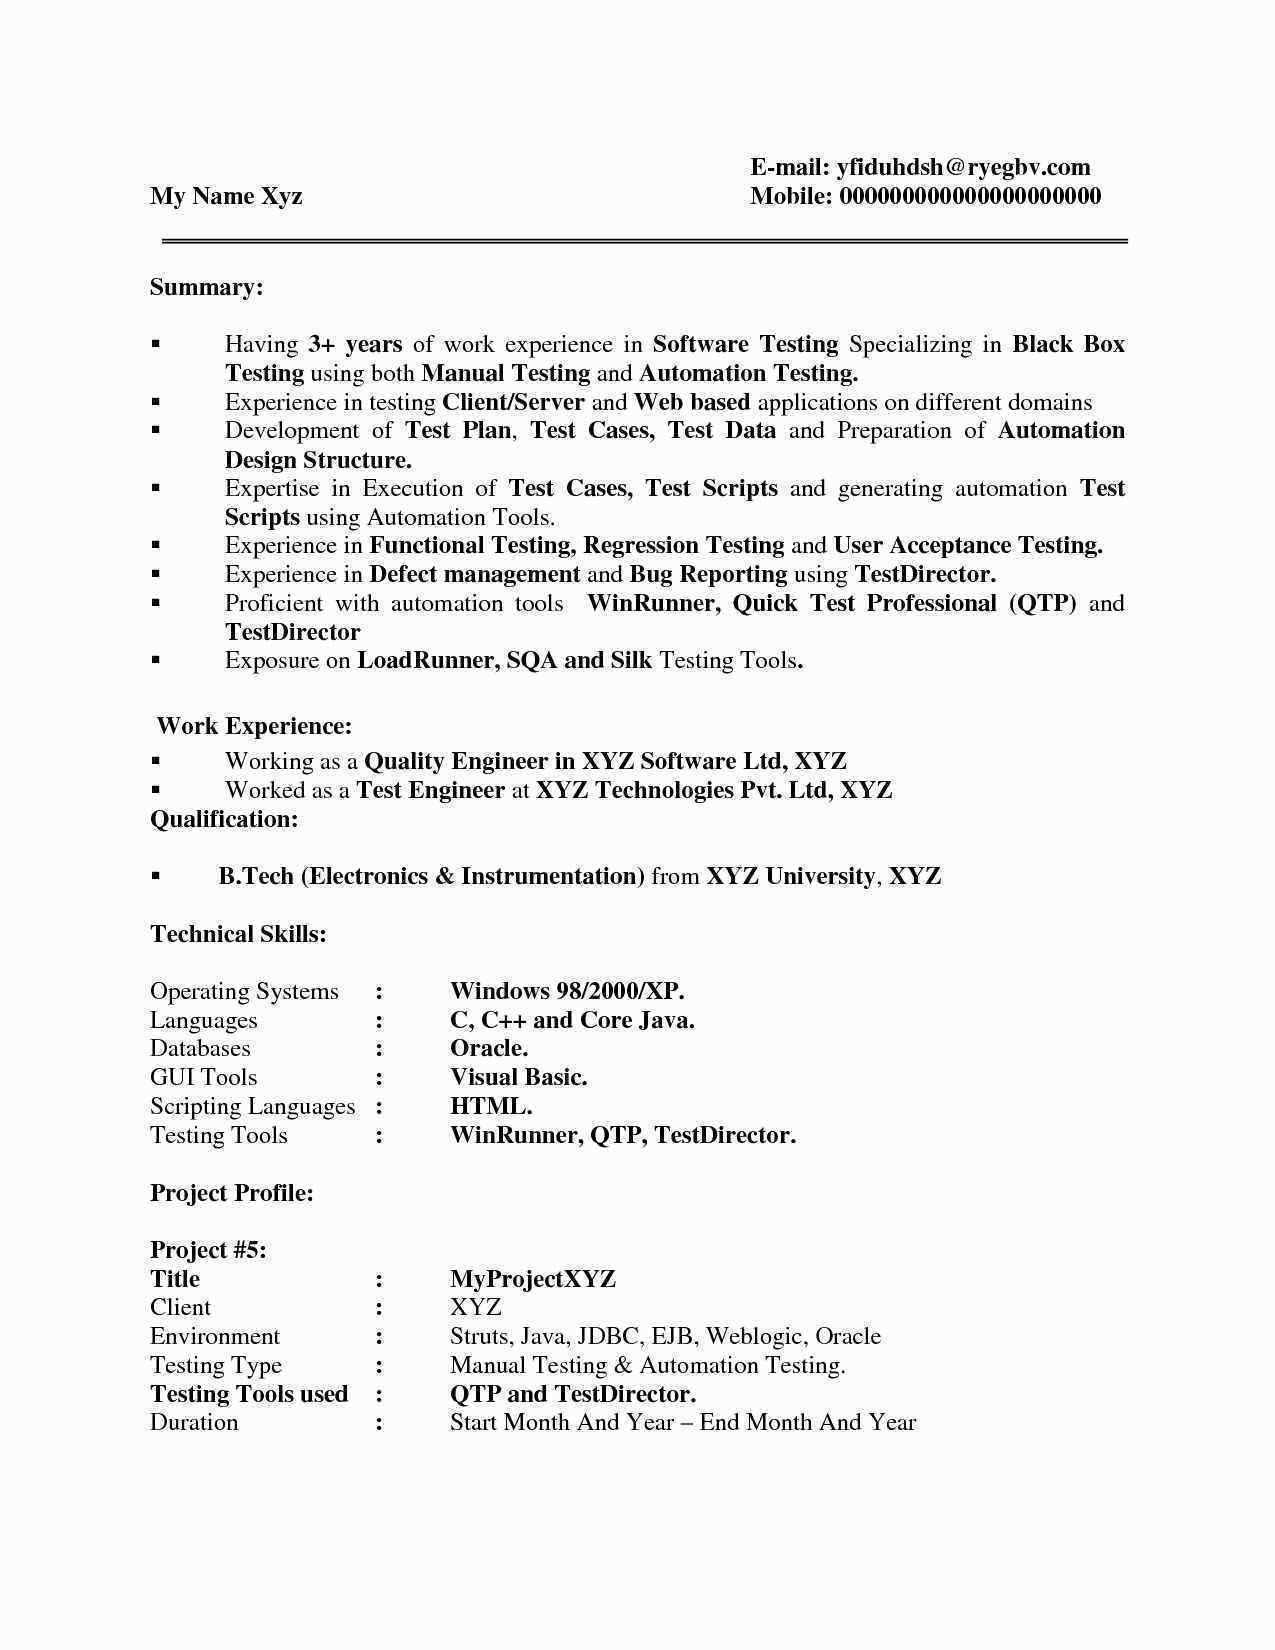 Resume Format For 5 Years Experience In Testing Cover Letter For Resume Resume Format Software Testing